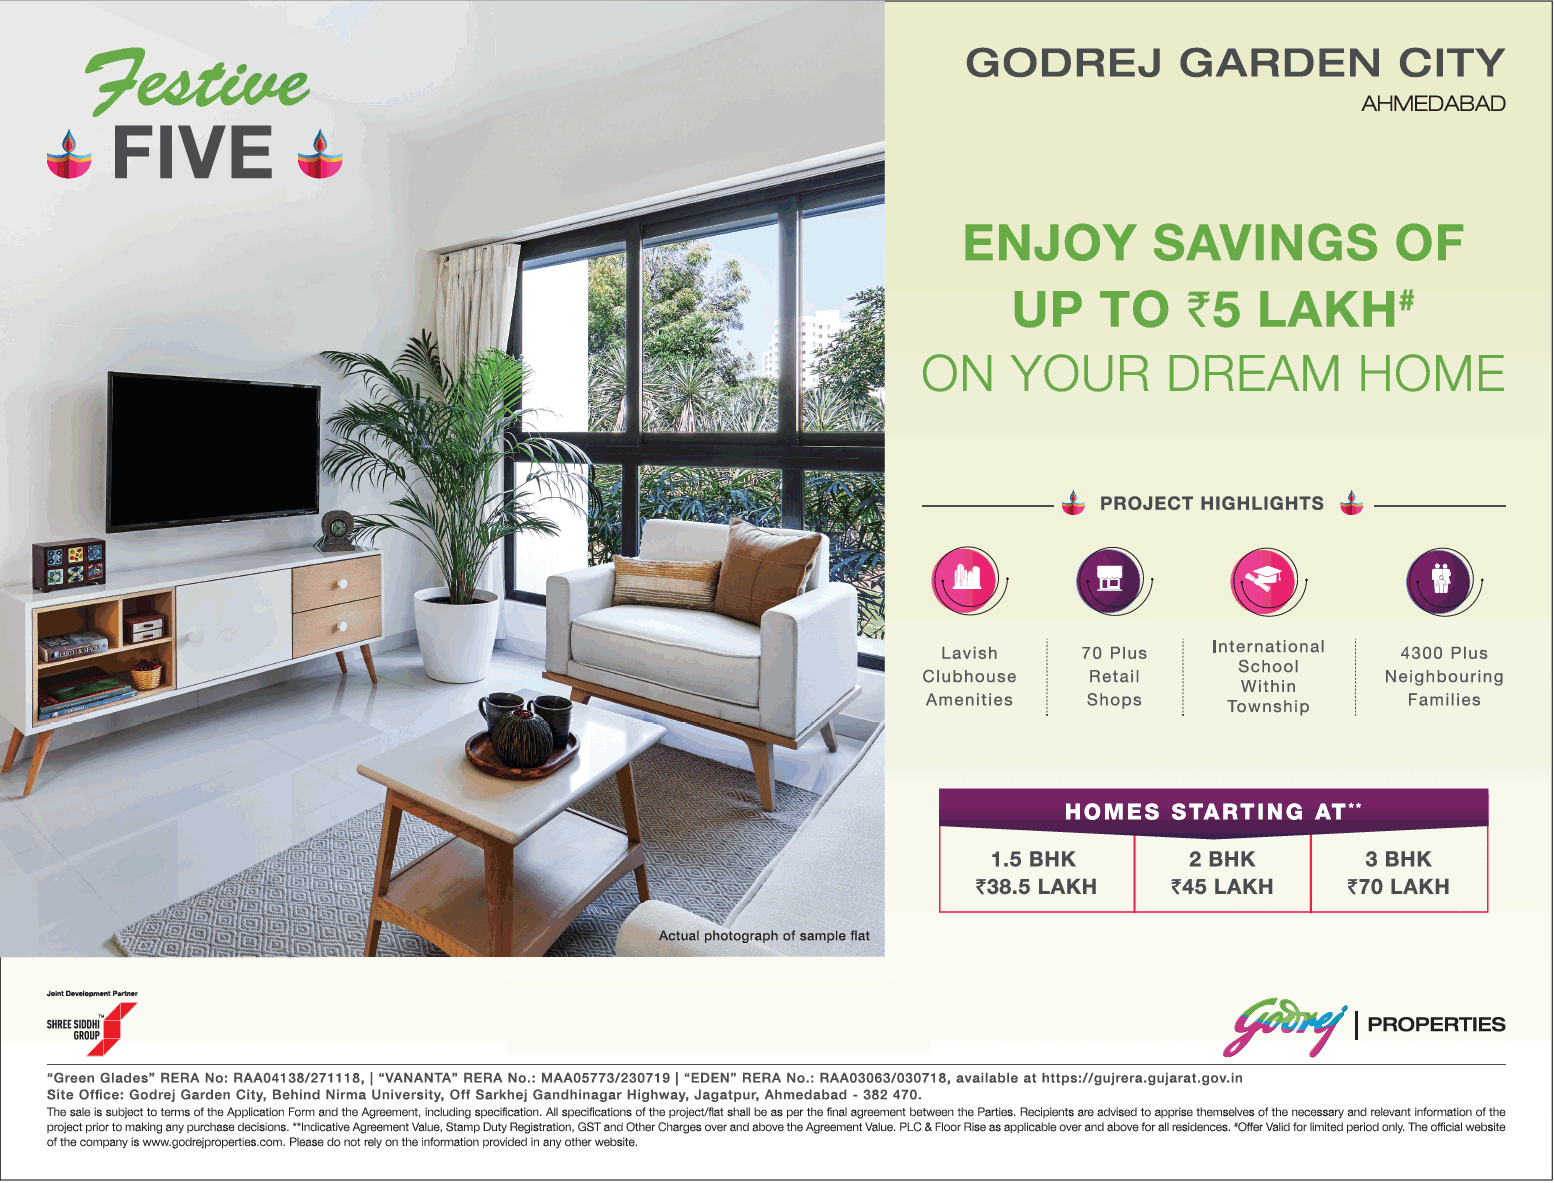 Enjoy savings of up to Rs 5 Lakh on your dream home at Godrej Garden City Ahmedabad